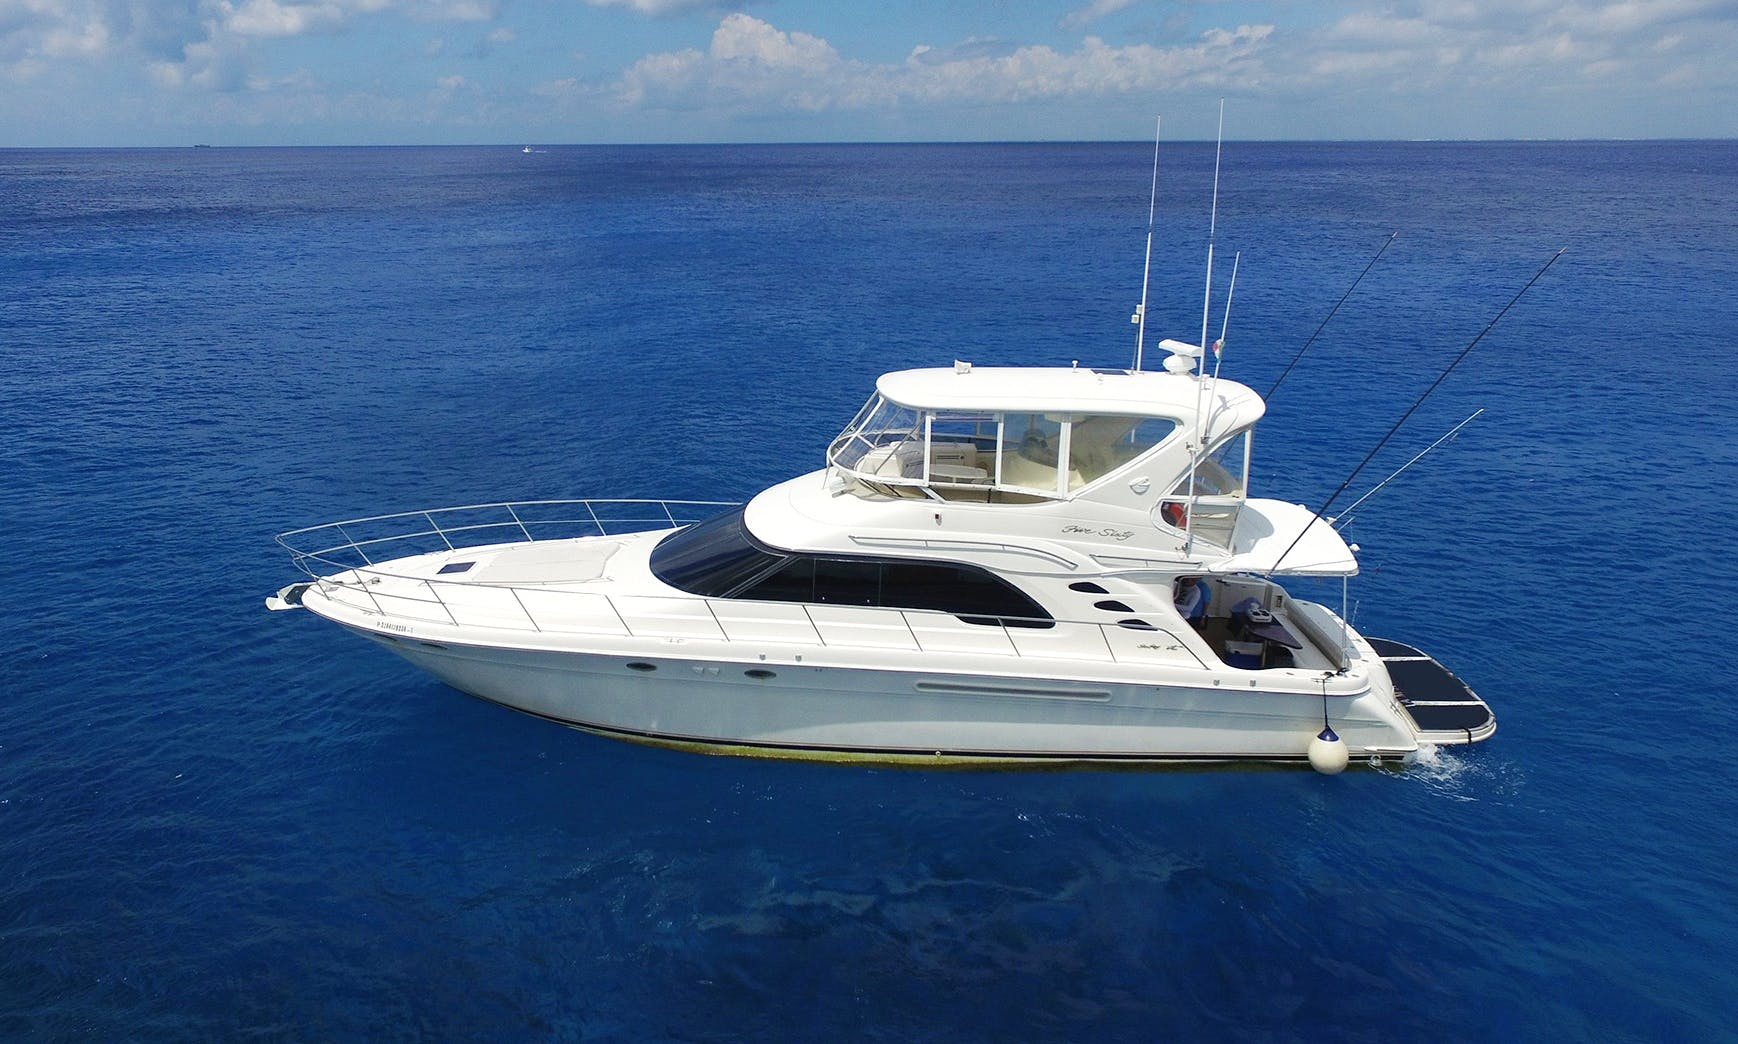 55 ft Sea Ray Cozumel, Quintana Roo